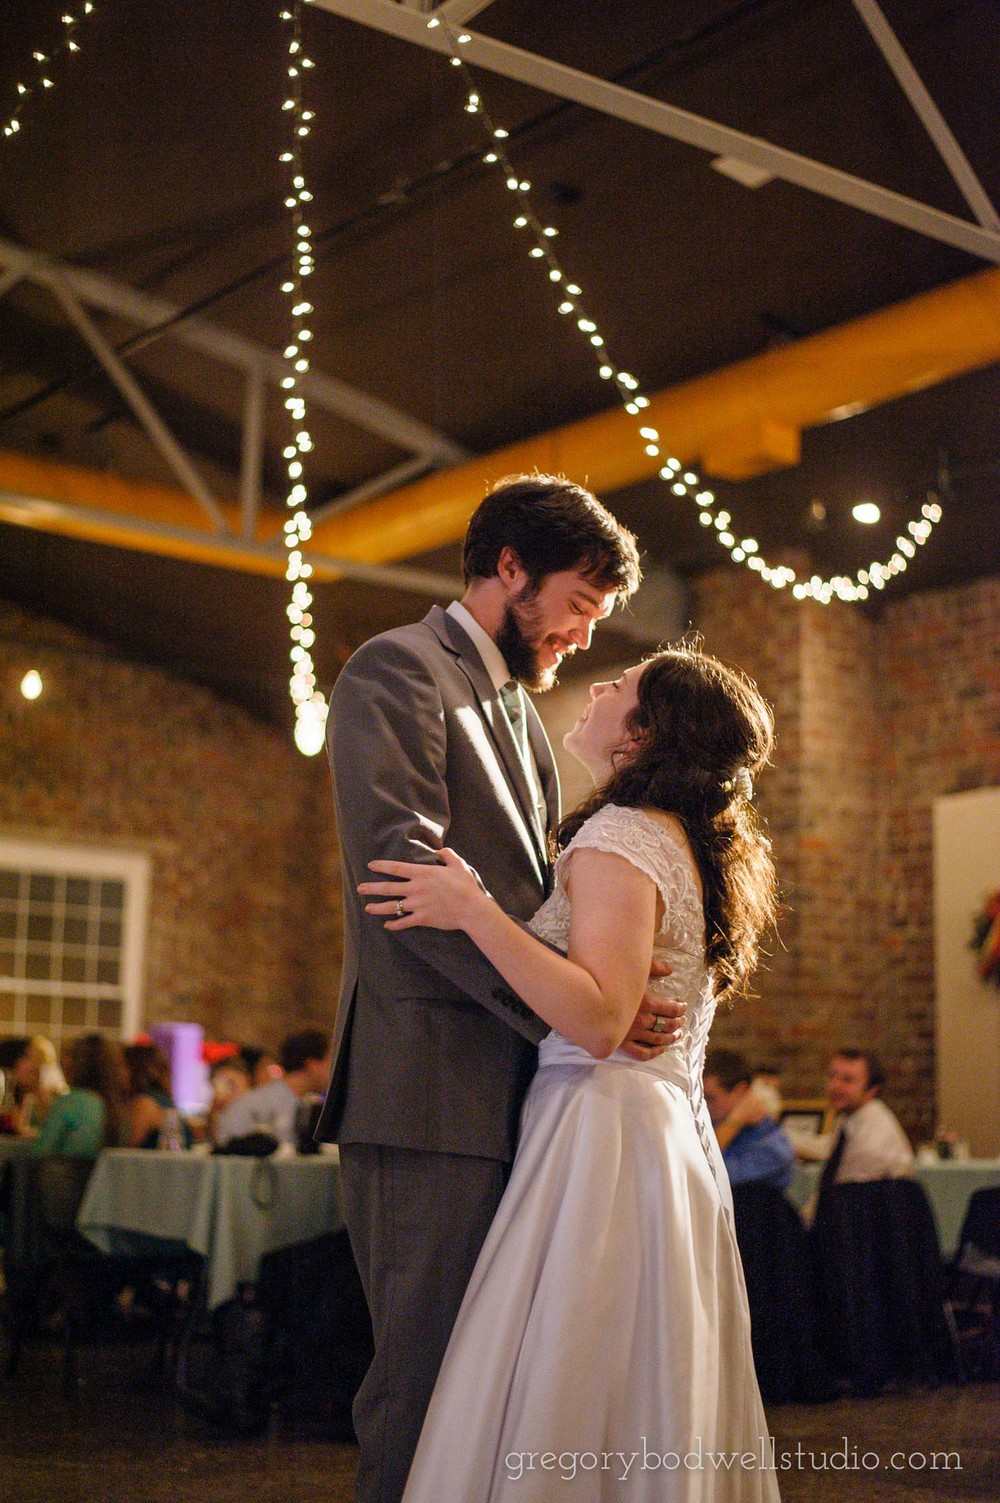 Bumpus_Wedding_028.jpg